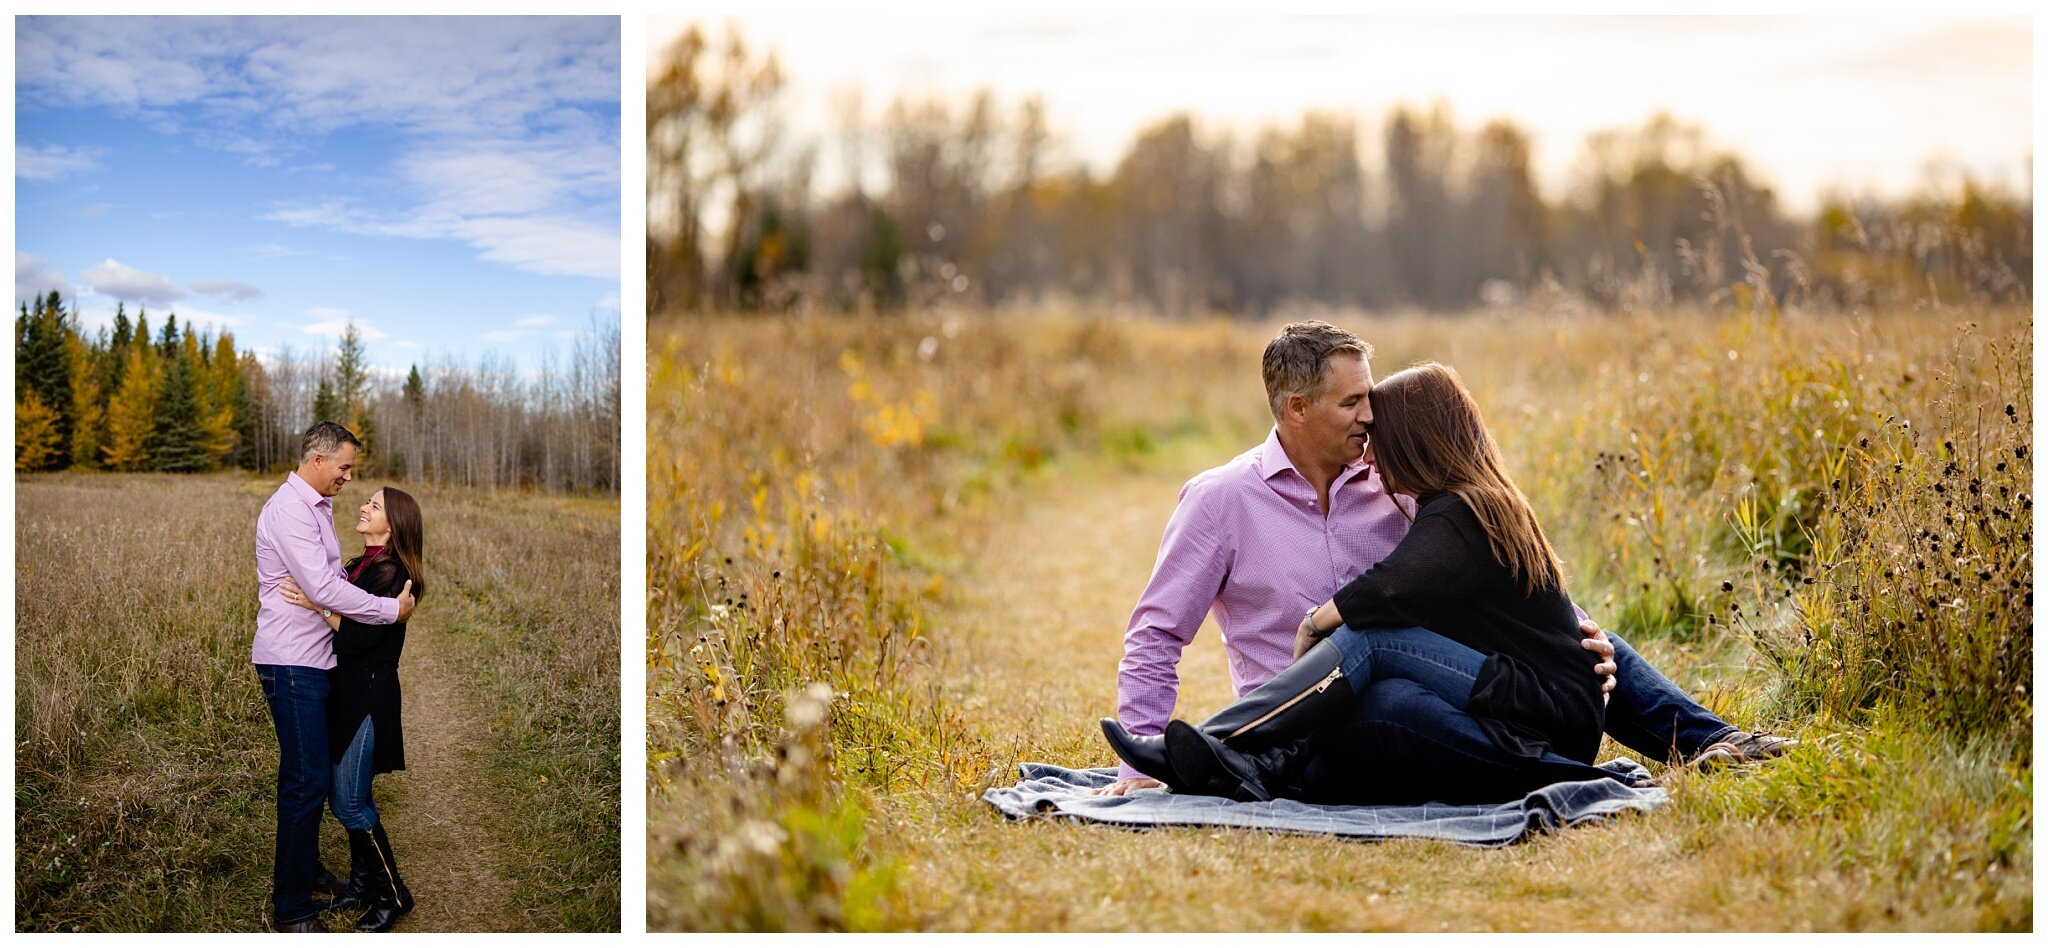 Wagner Natural Area Acheson couples Photographer Alberta  engagement older couple romantic fall photos_0004.jpg